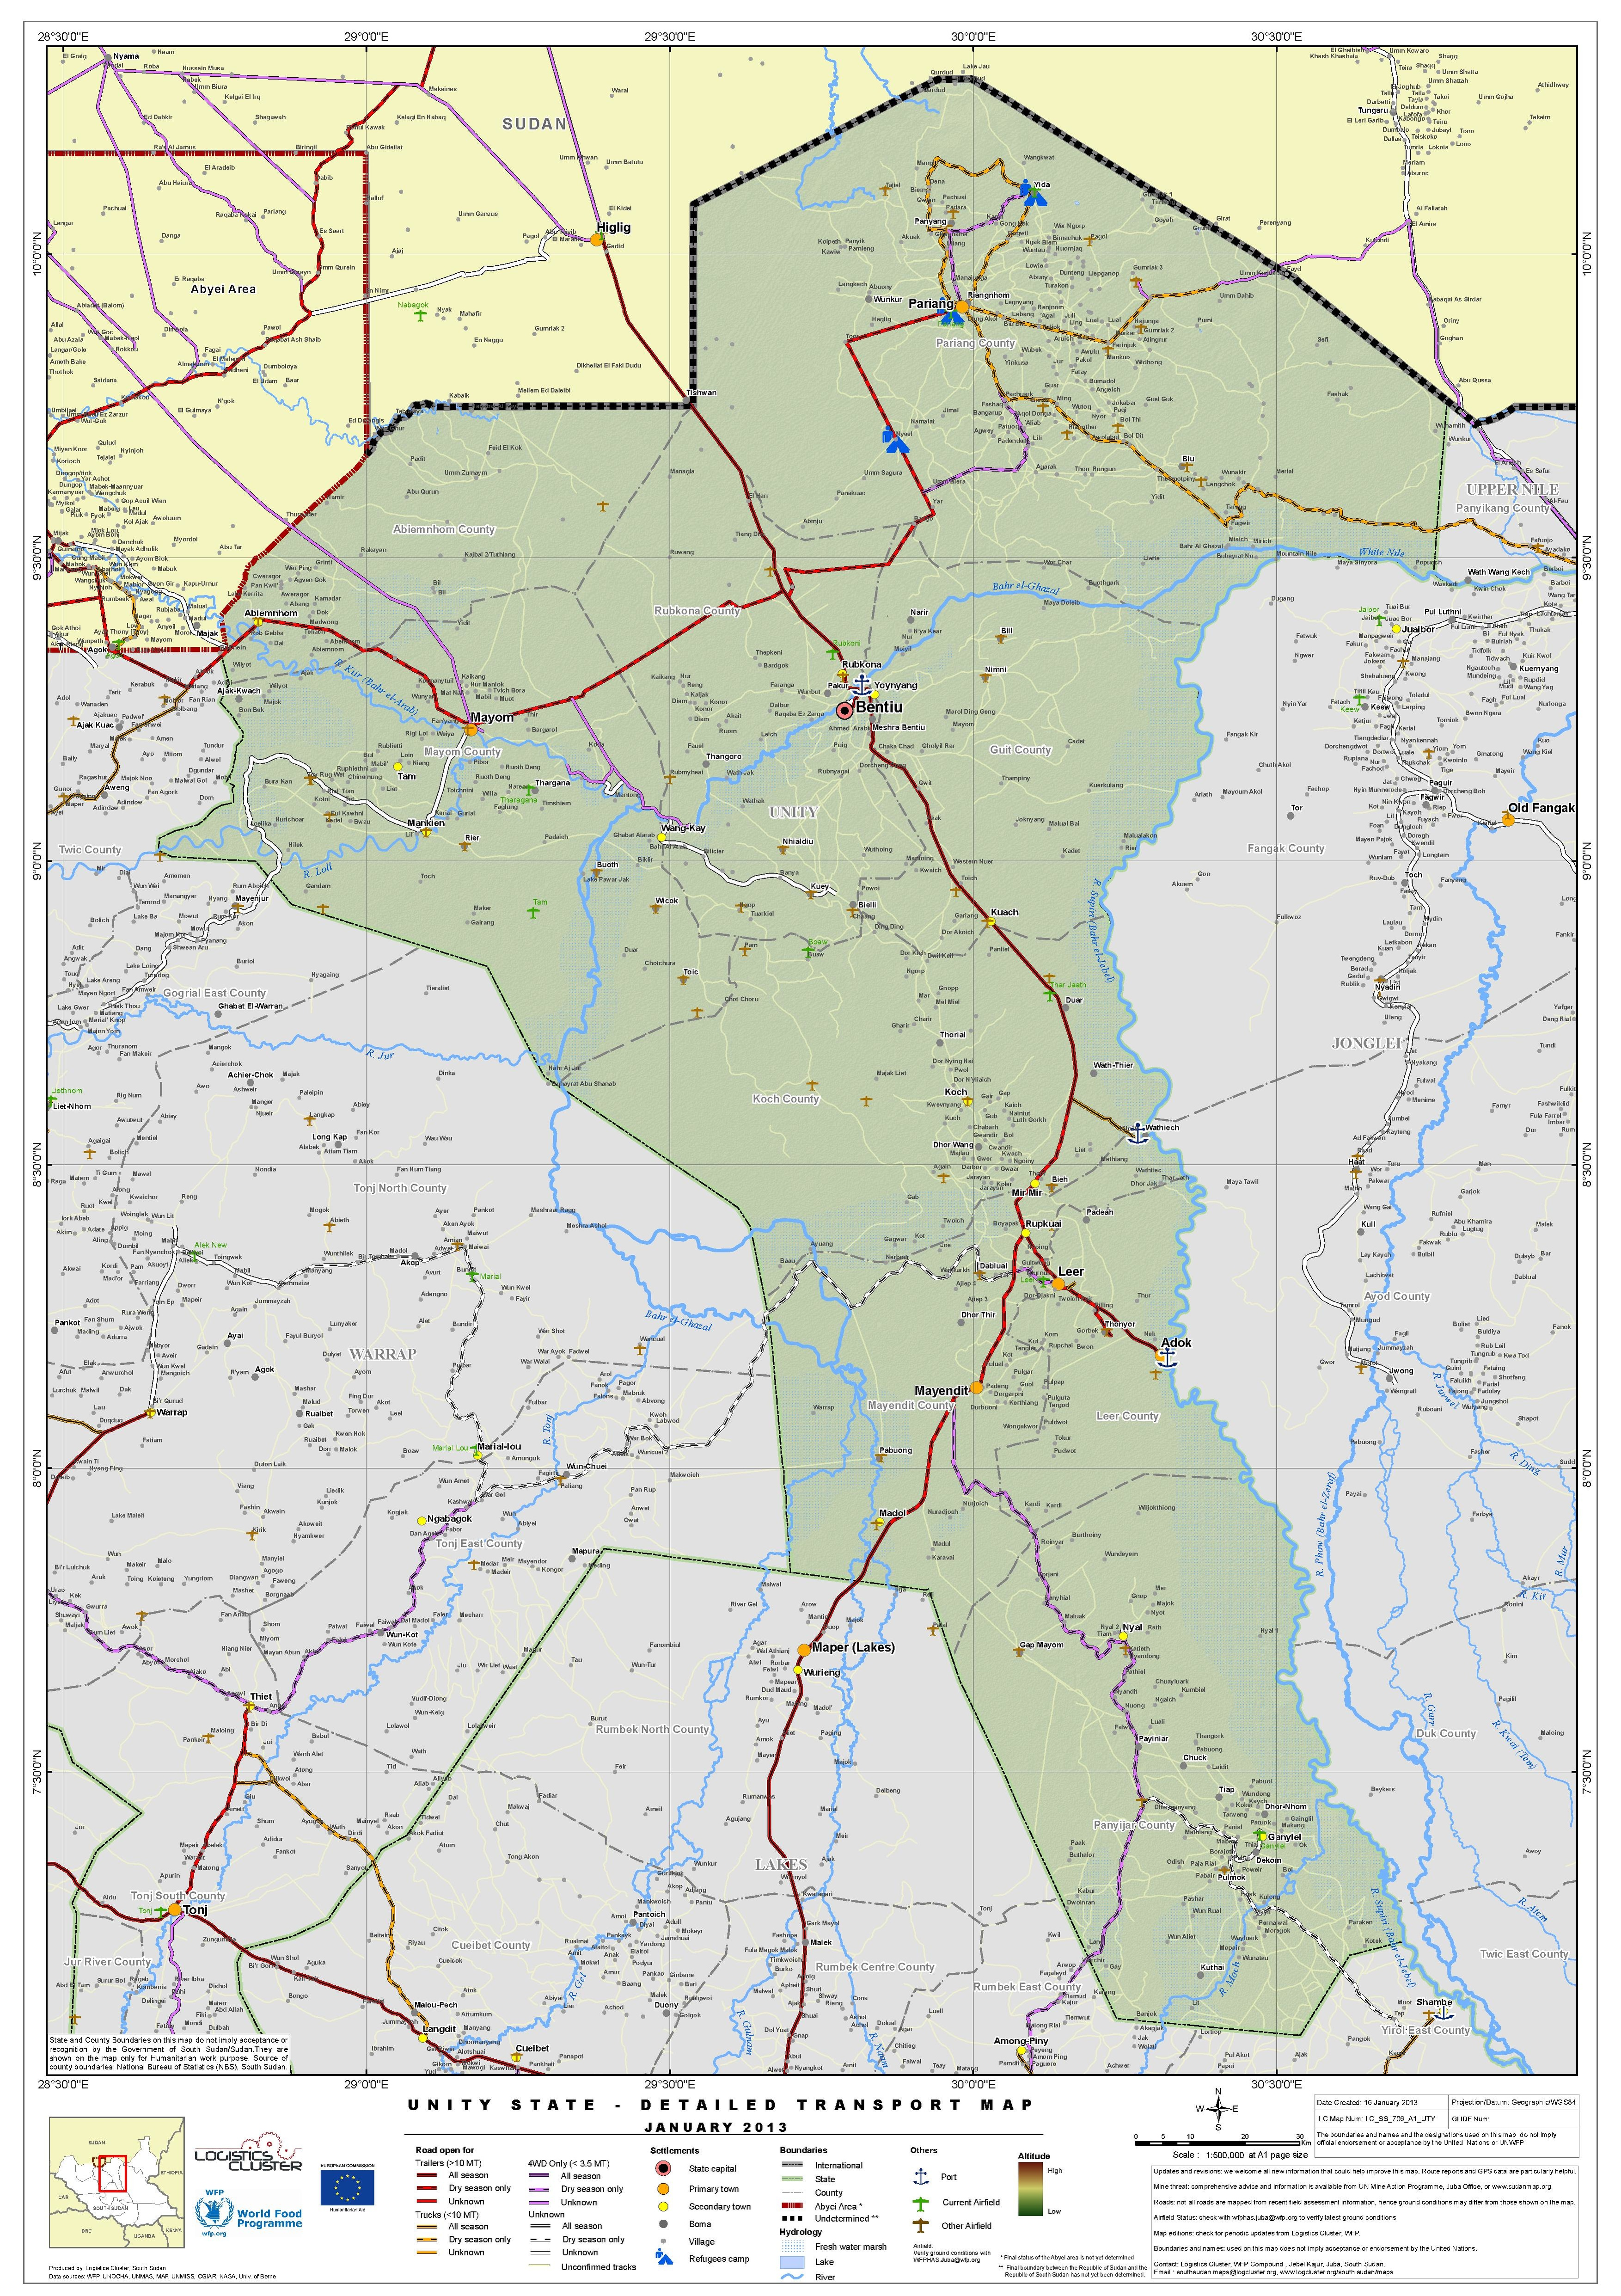 Filesouth sudan unity state detailed transport map jan 2013pdf filesouth sudan unity state detailed transport map jan 2013pdf gumiabroncs Images